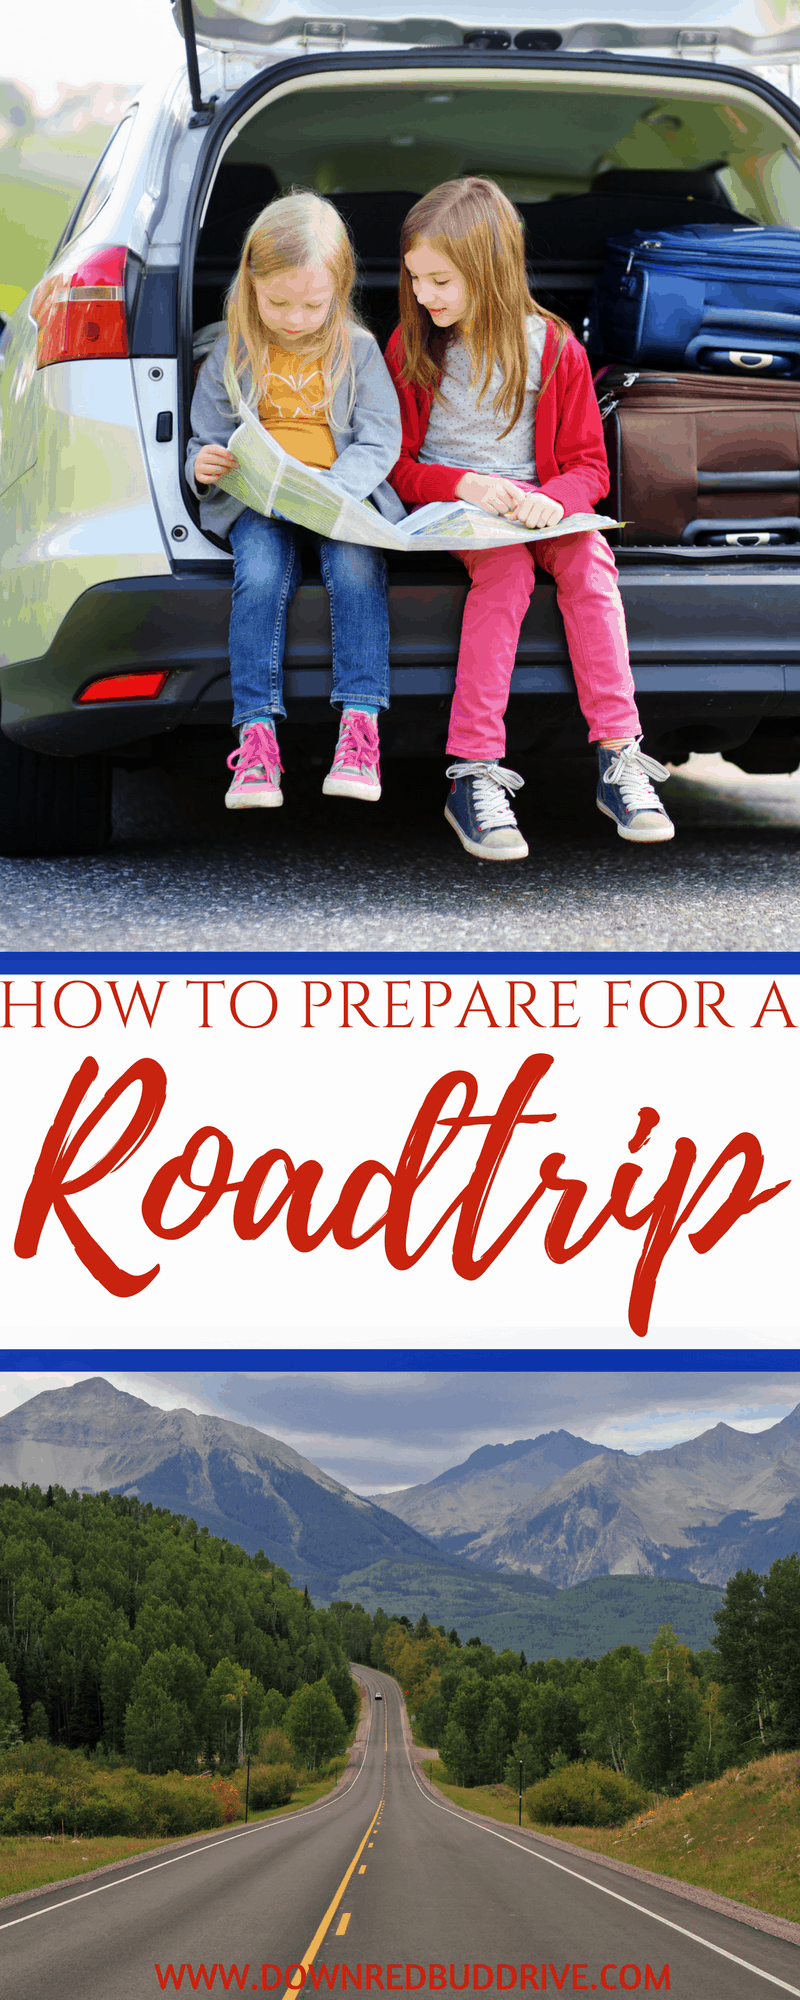 What You Should Do To Prepare for a Roadtrip | Roadtrip | Roadtrip Planning | Emergency Kit | Travel Checklist | Travel Ready | Travel Tips | Roadtrip Tips | Down Redbud Drive #ad #traveltips #roadtrip